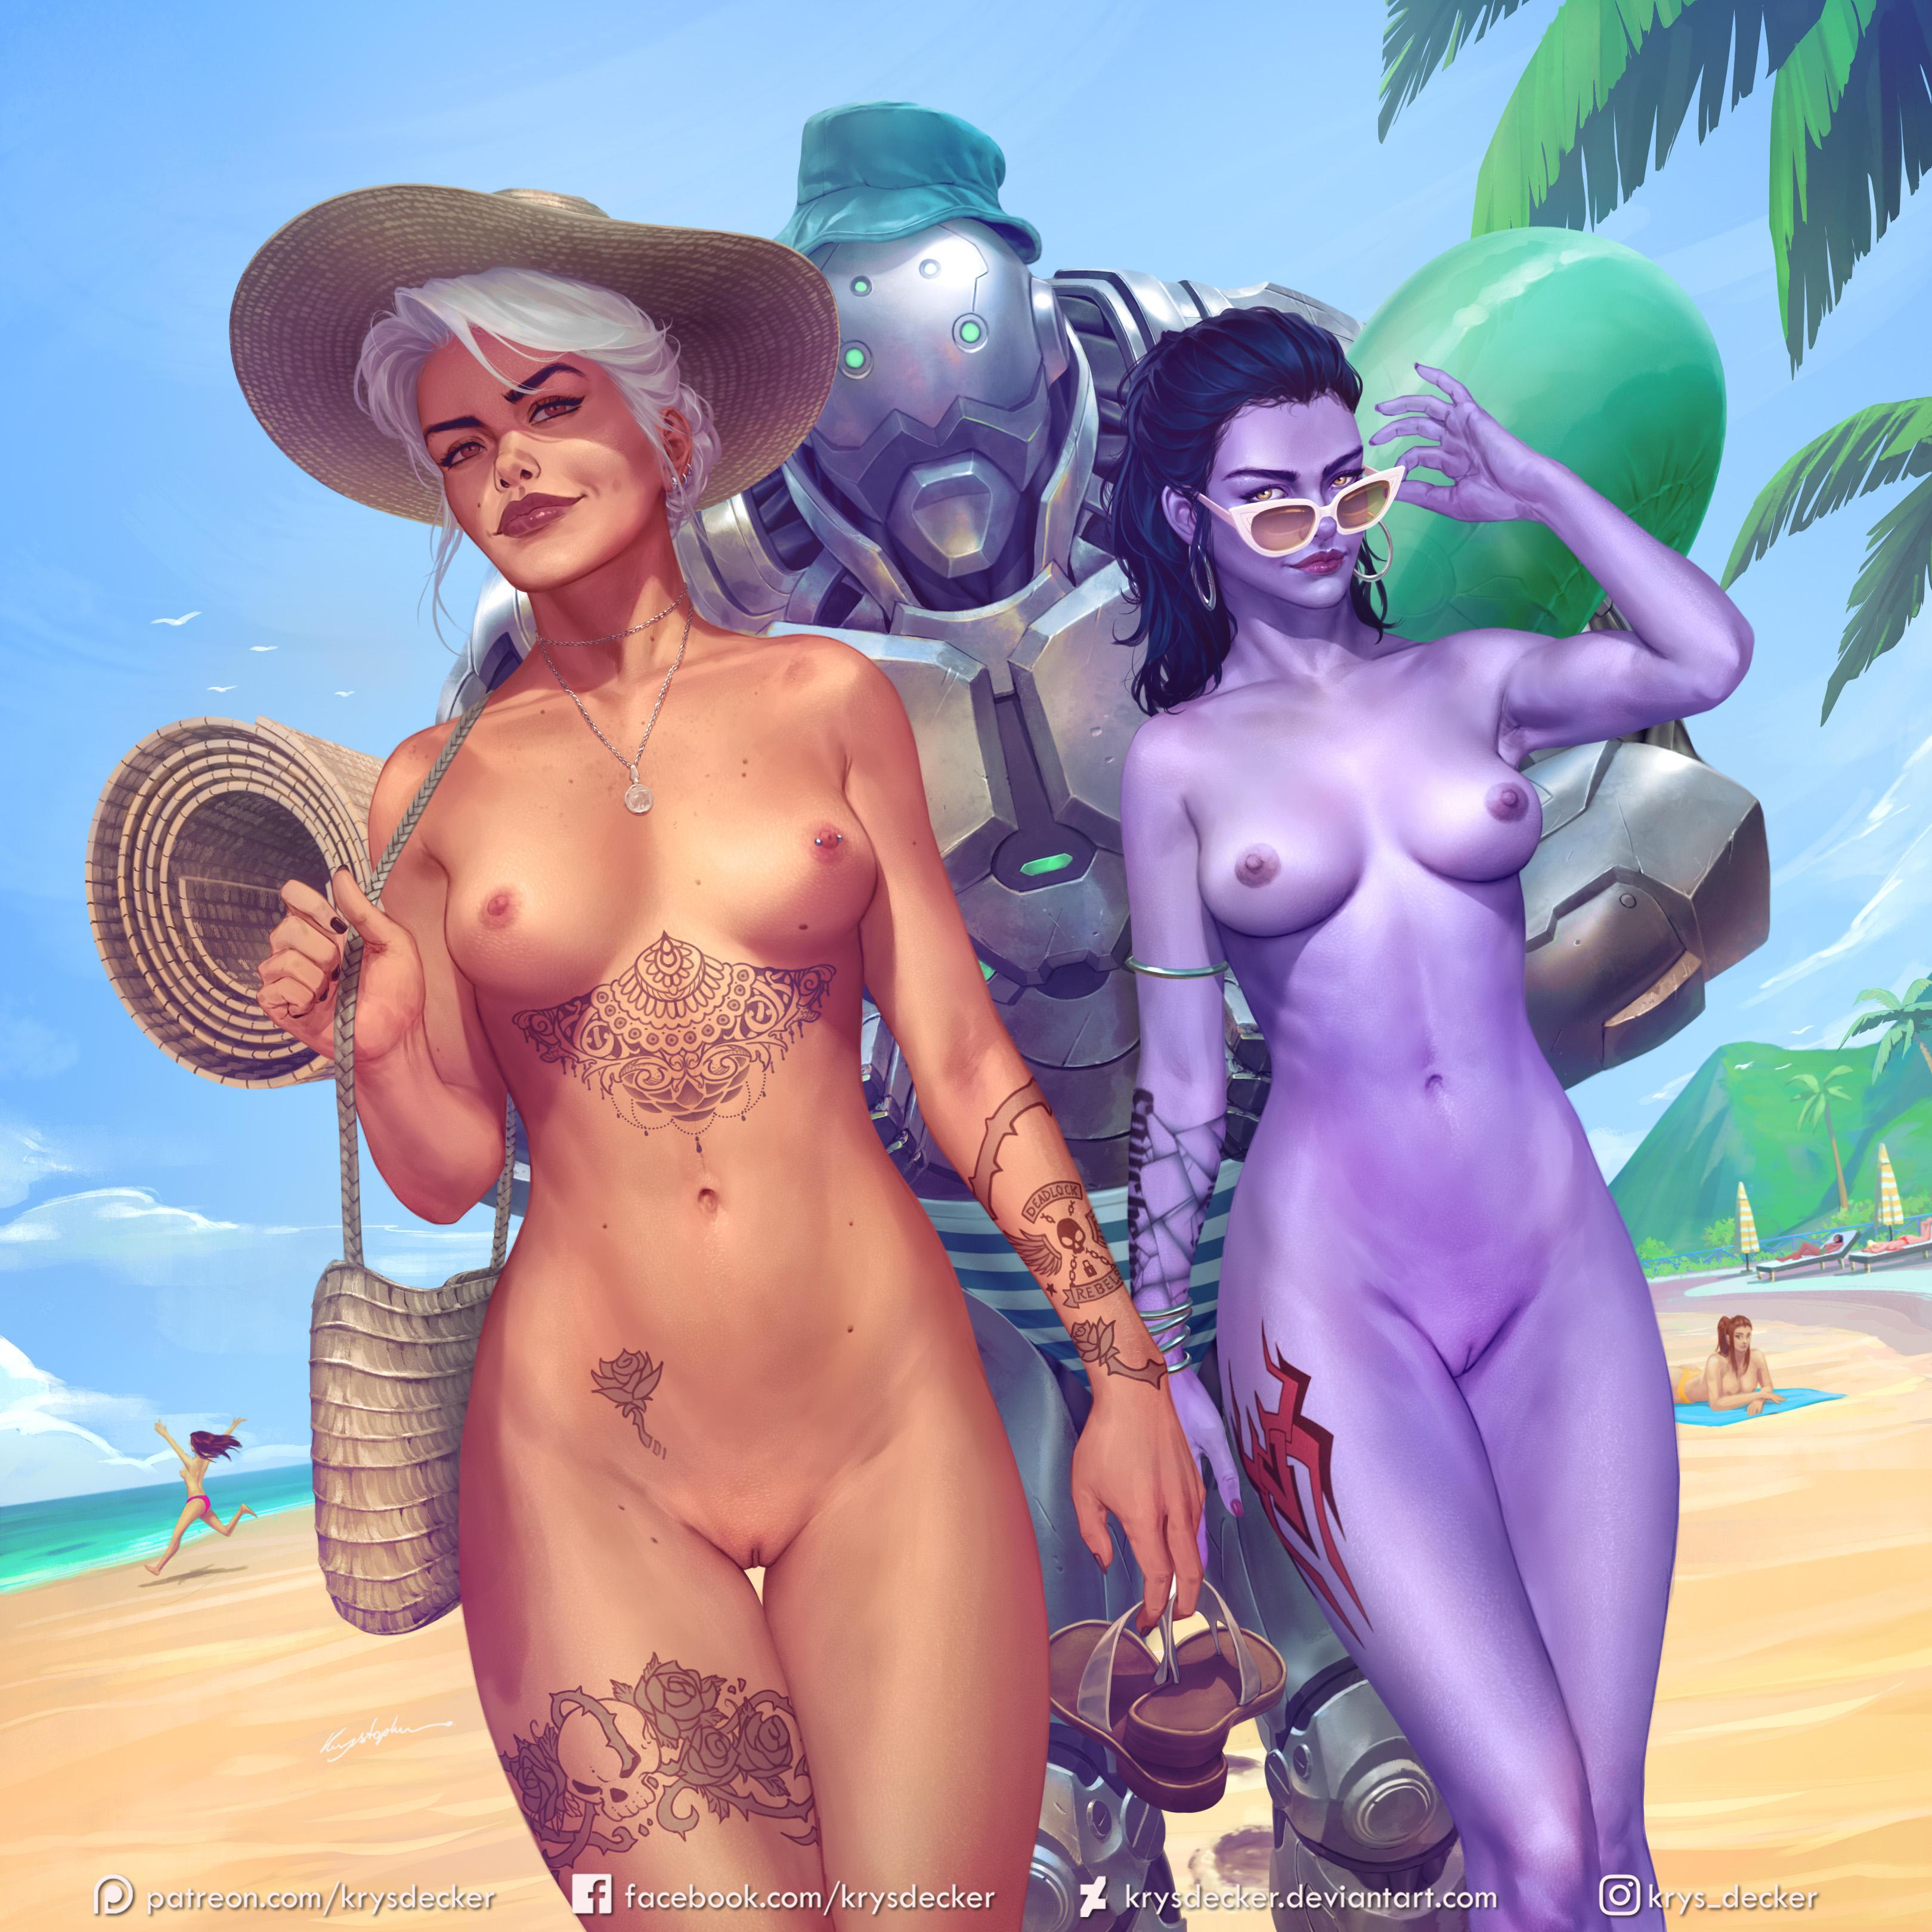 2girls alternate_costume areolae ashe_(overwatch) beach big_breasts blizzard_entertainment bob_(overwatch) breasts completely_nude cote_d'azur_widowmaker cyborg detailed_background digital_media_(artwork) earrings female female_focus hat hi_res highres krysdecker legs light_skin long_hair looking_at_viewer navel necklace nipple_piercing nipples nude outdoors overwatch purple_hair purple_skin pussy sunglasses tattoo thick_thighs thigh_gap thighs vagina white_hair widowmaker